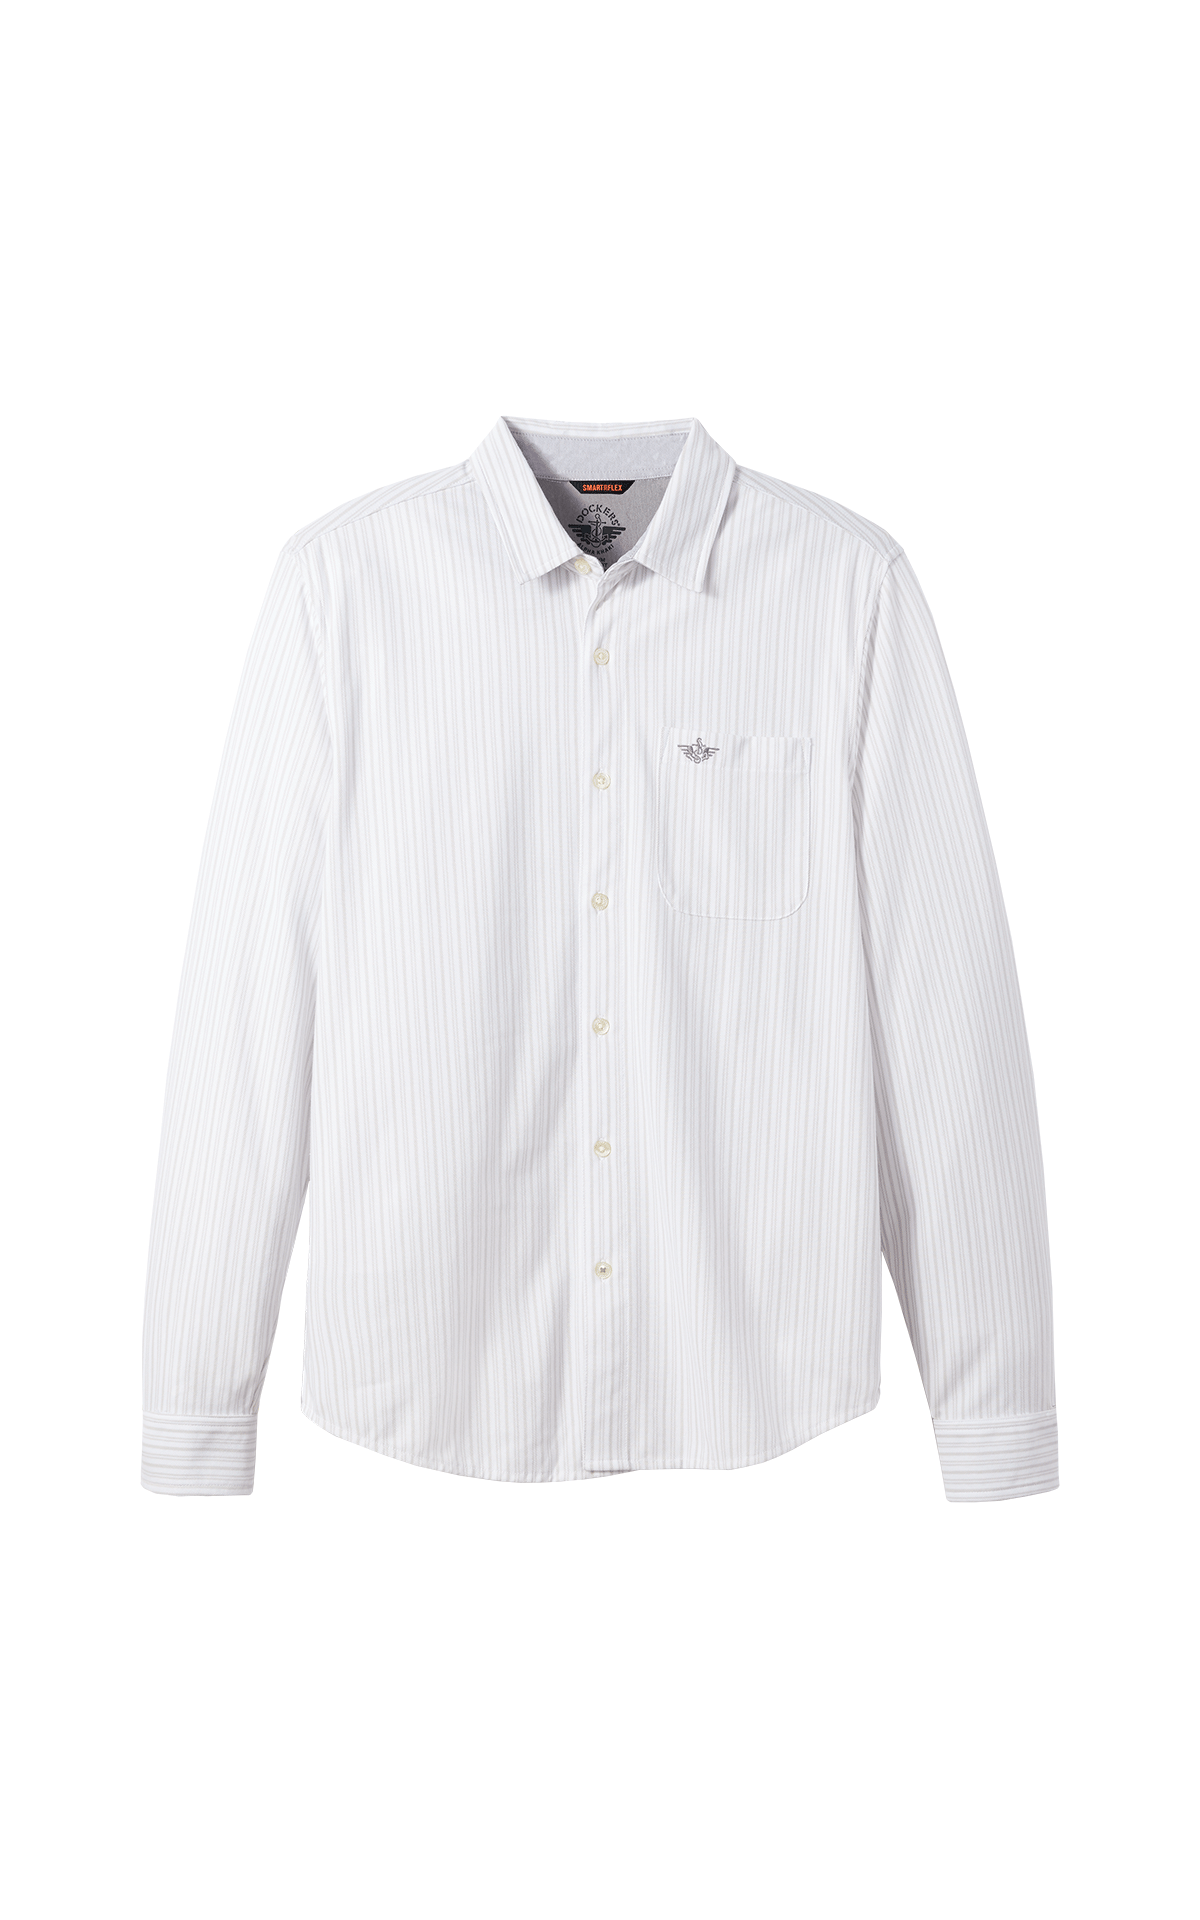 White striped cotton shirt for man Dockers